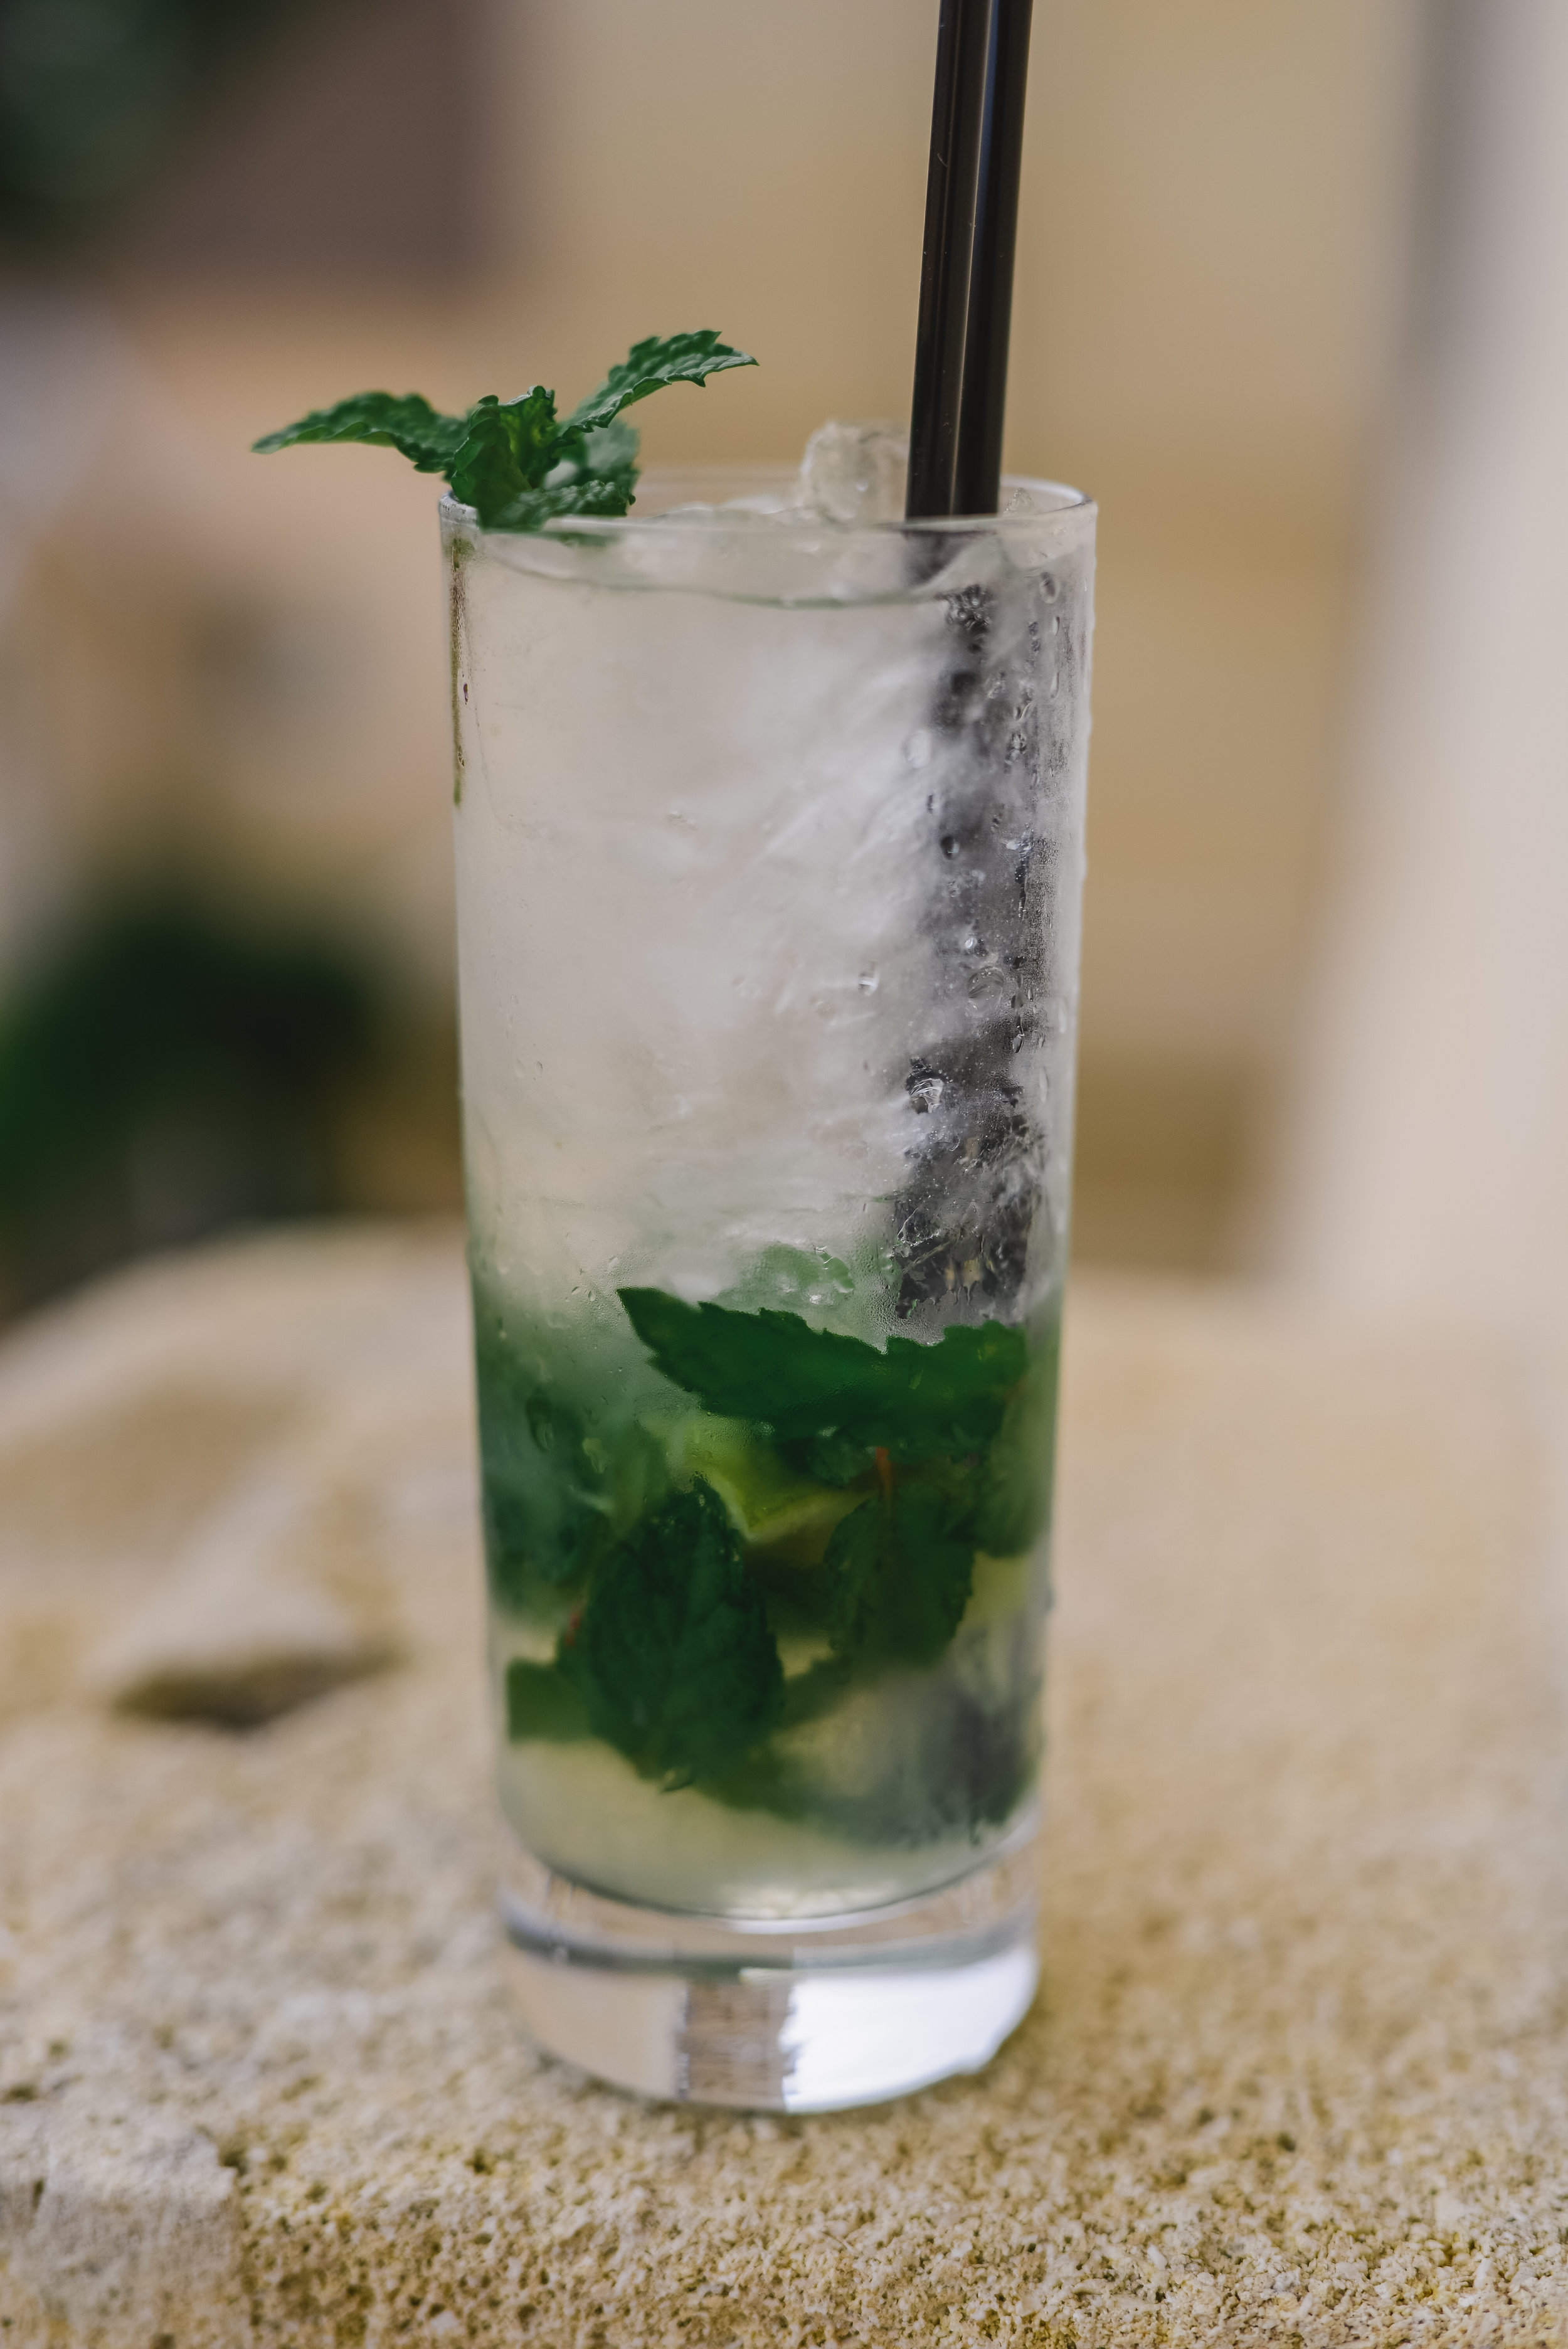 My favorite mojito to date - The French mojito, by Chateau Grand Barrail.